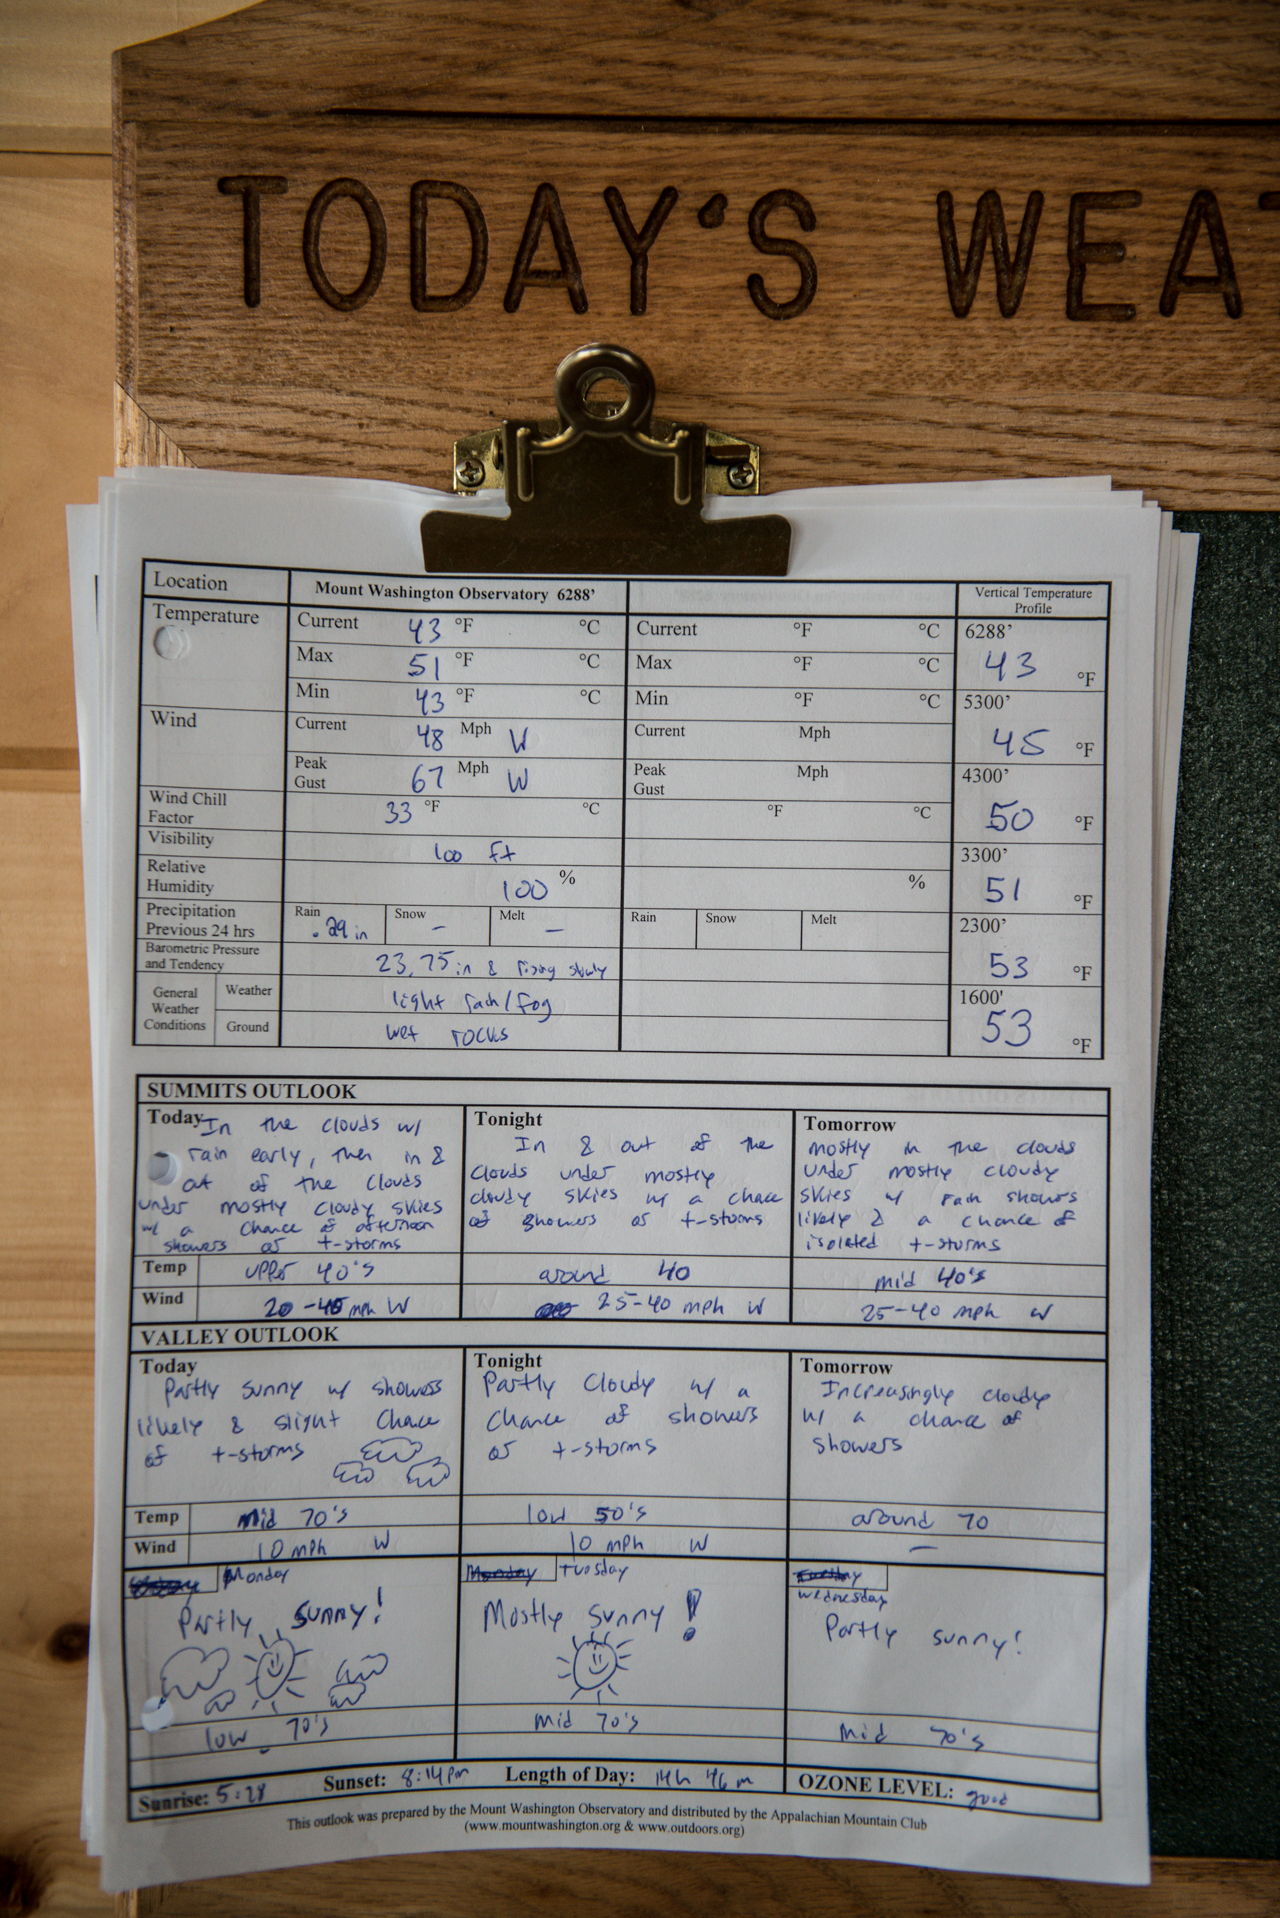 Madison Spring Hut weather report clipboard